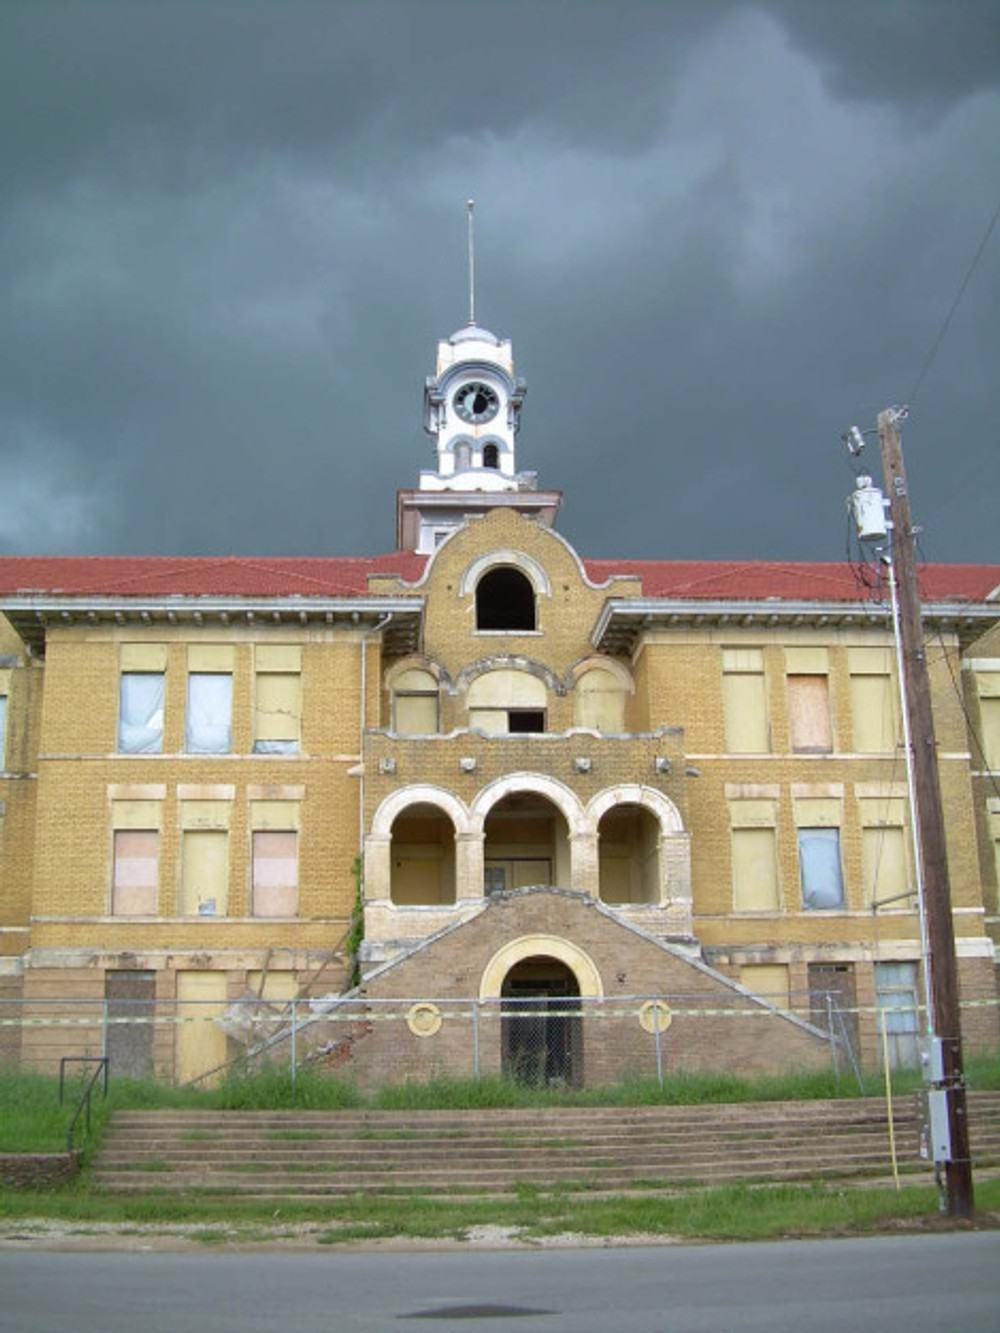 The beautiful Denison high school, which anchored the western end of Main Street, was razed in 2007. And now a CVS Pharmacy will occupy the spot! Yea, progress!